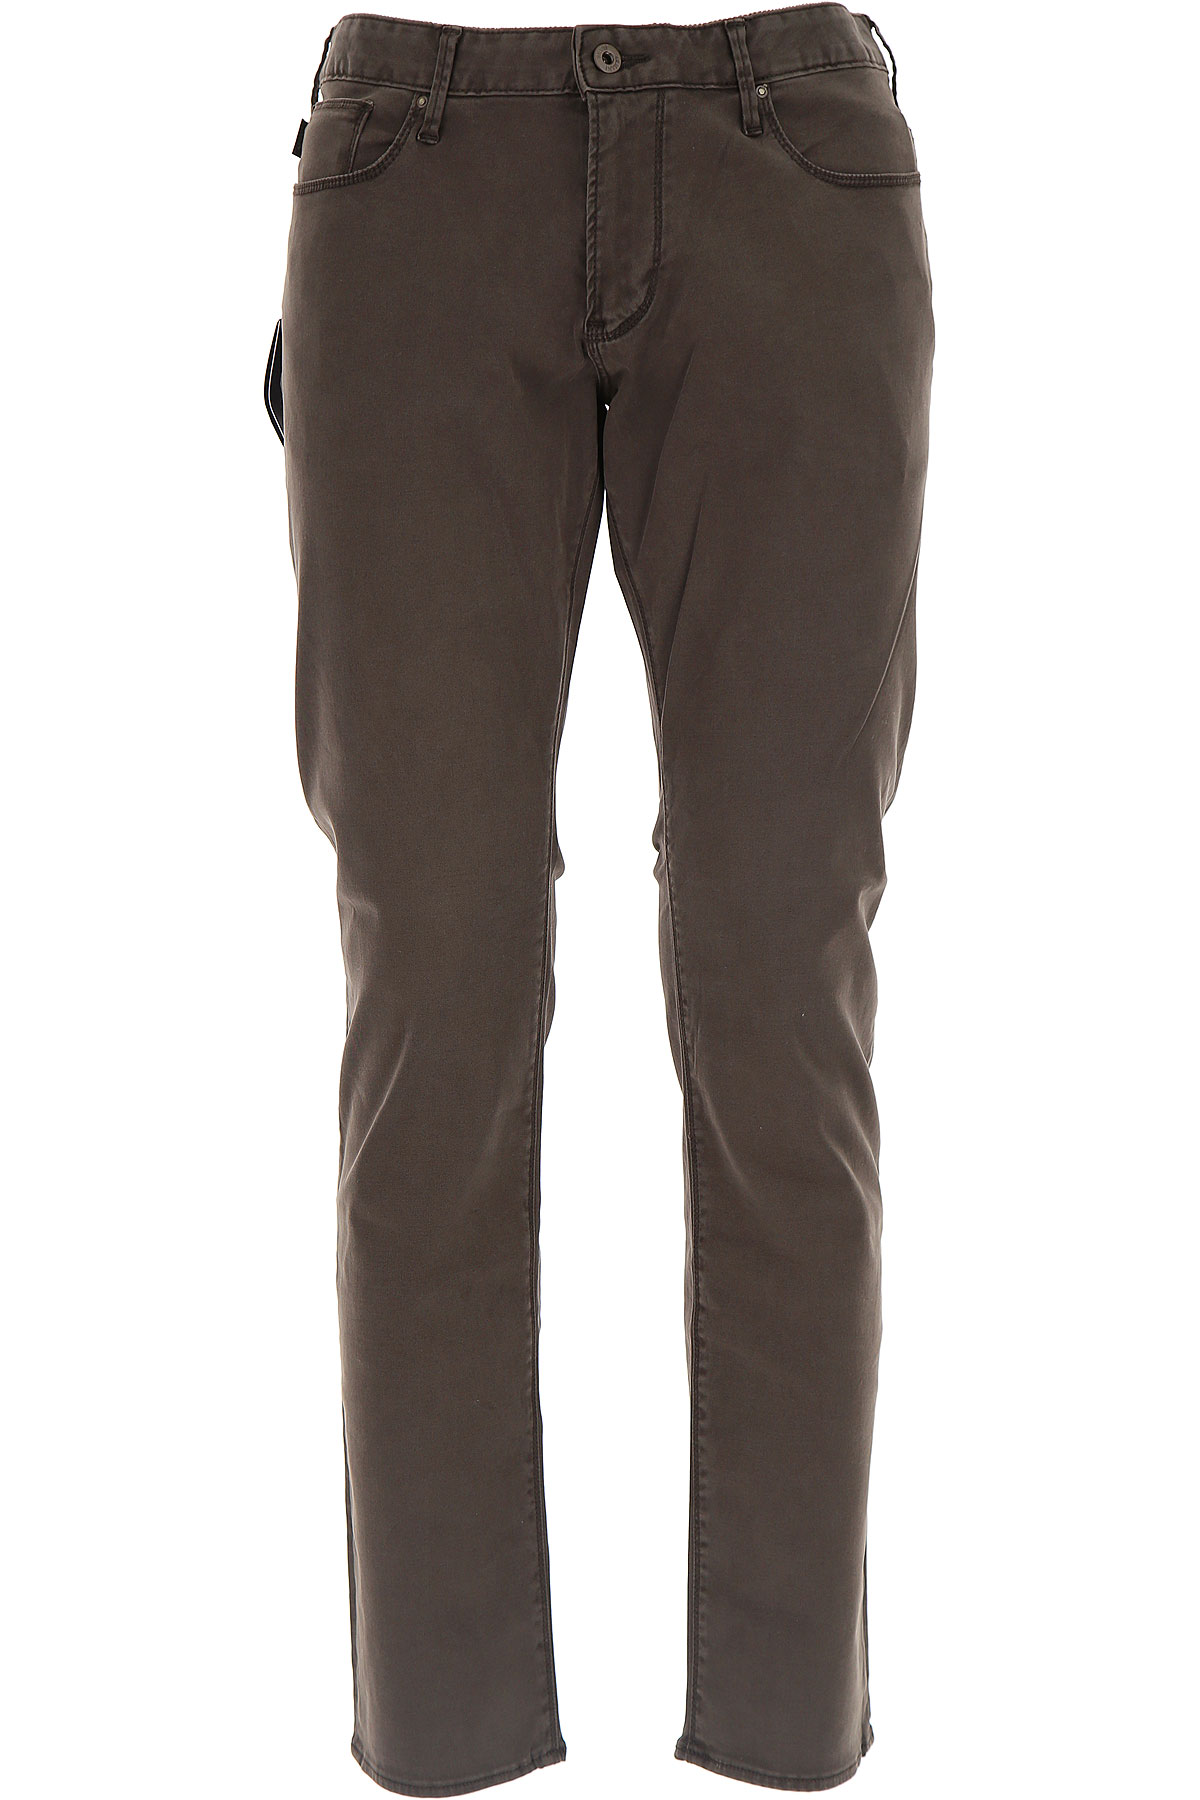 Emporio Armani Jeans On Sale in Outlet, Brown, Cotton, 2017, 29 33 34